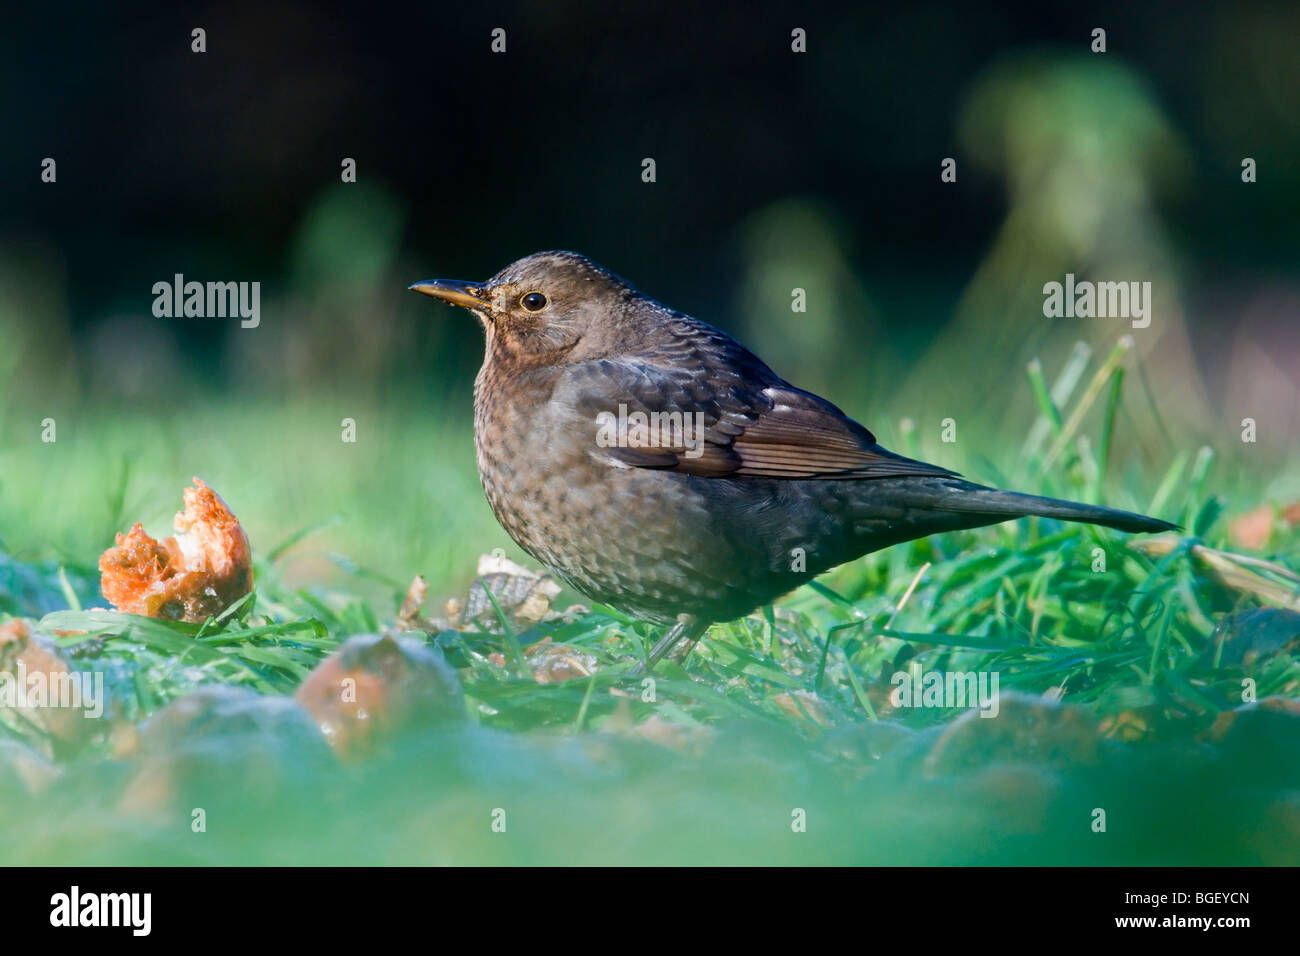 Female Blackbird feeding on rotten cider apples - Stock Image